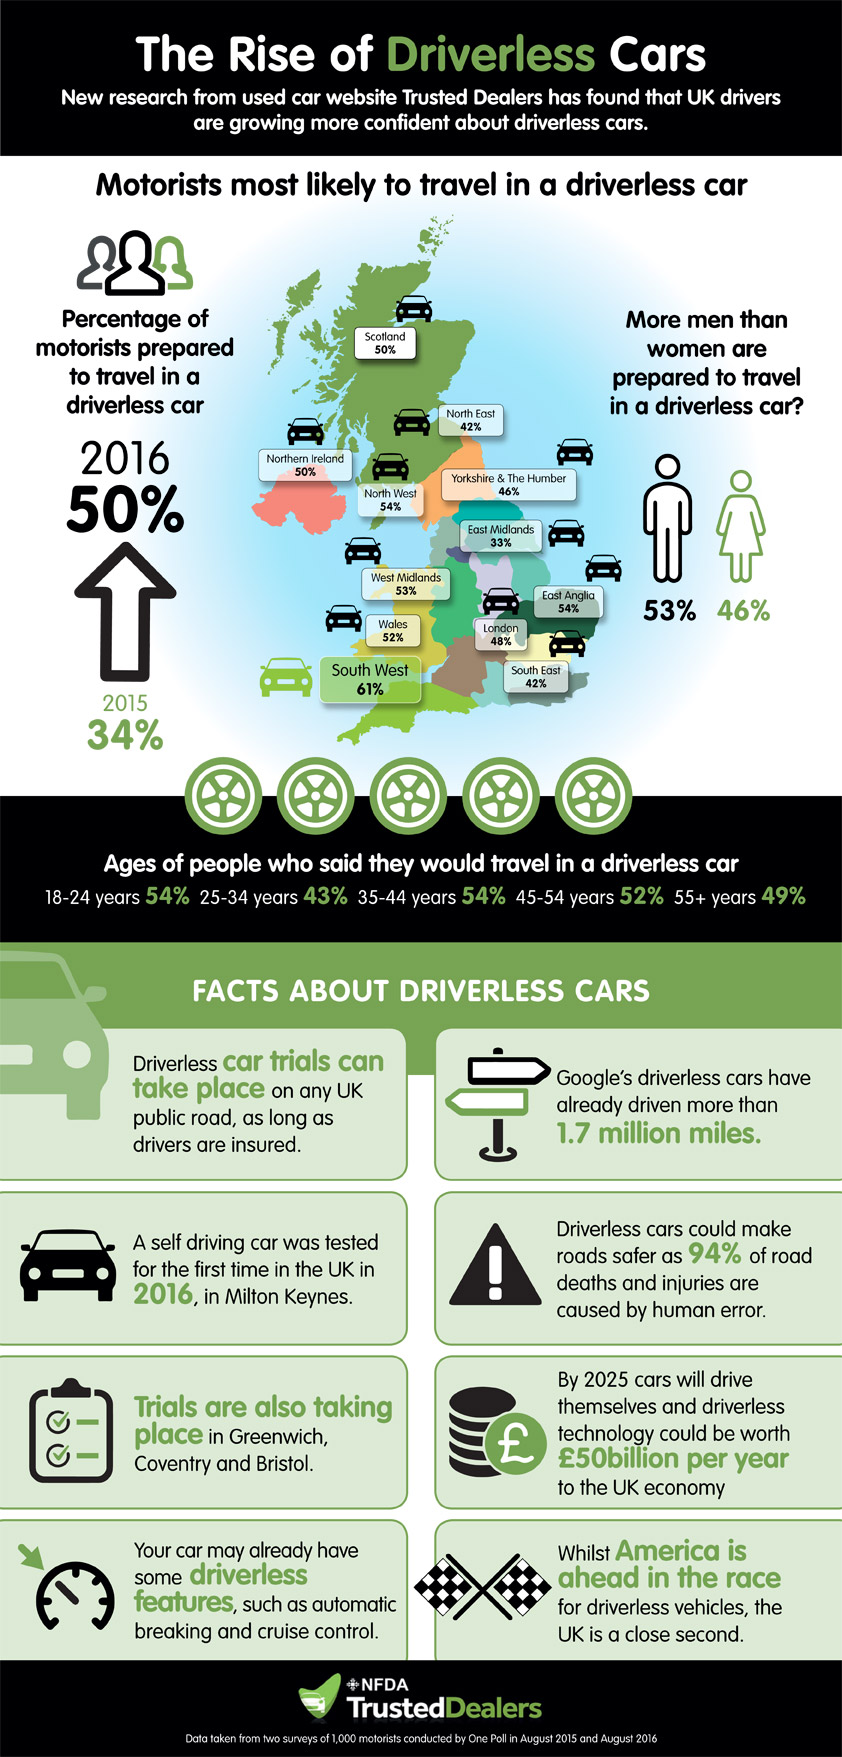 An infographic showing public attitudes towards driverless cars in the UK